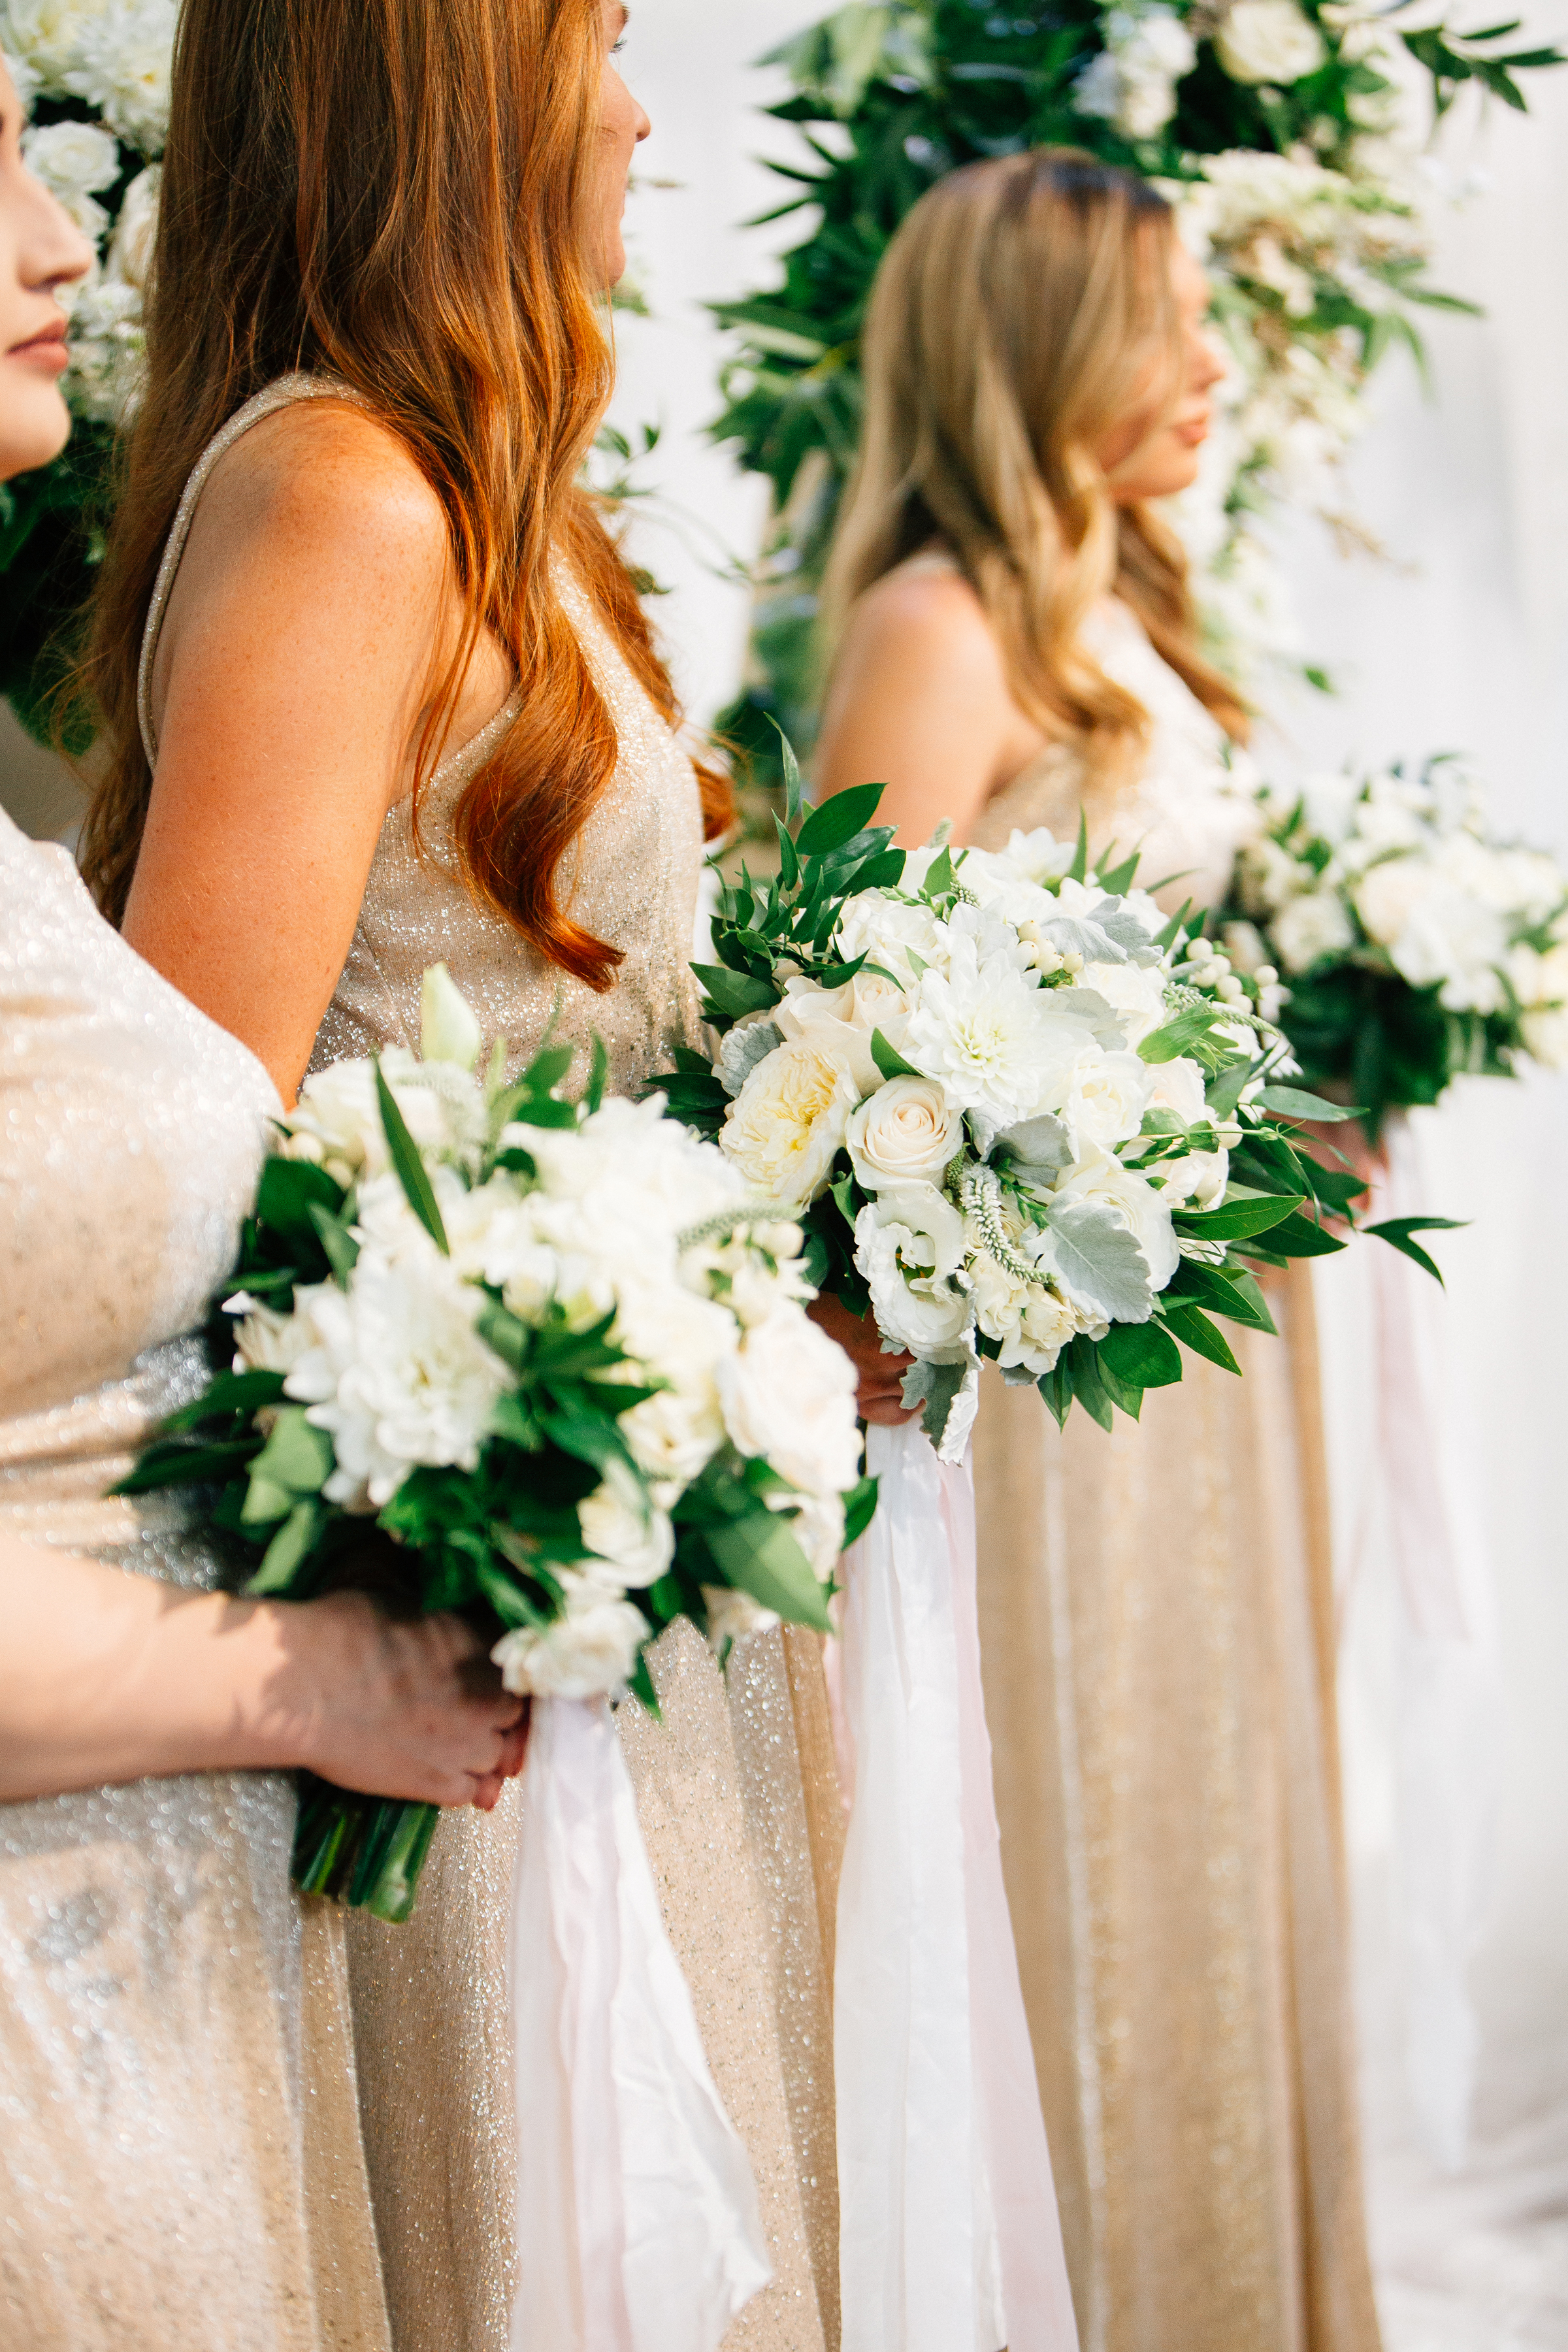 bridesmaid_bouquets_champagne_dress_sacramento_traditional_violette_fleurs_anna_perevertaylo.jpg